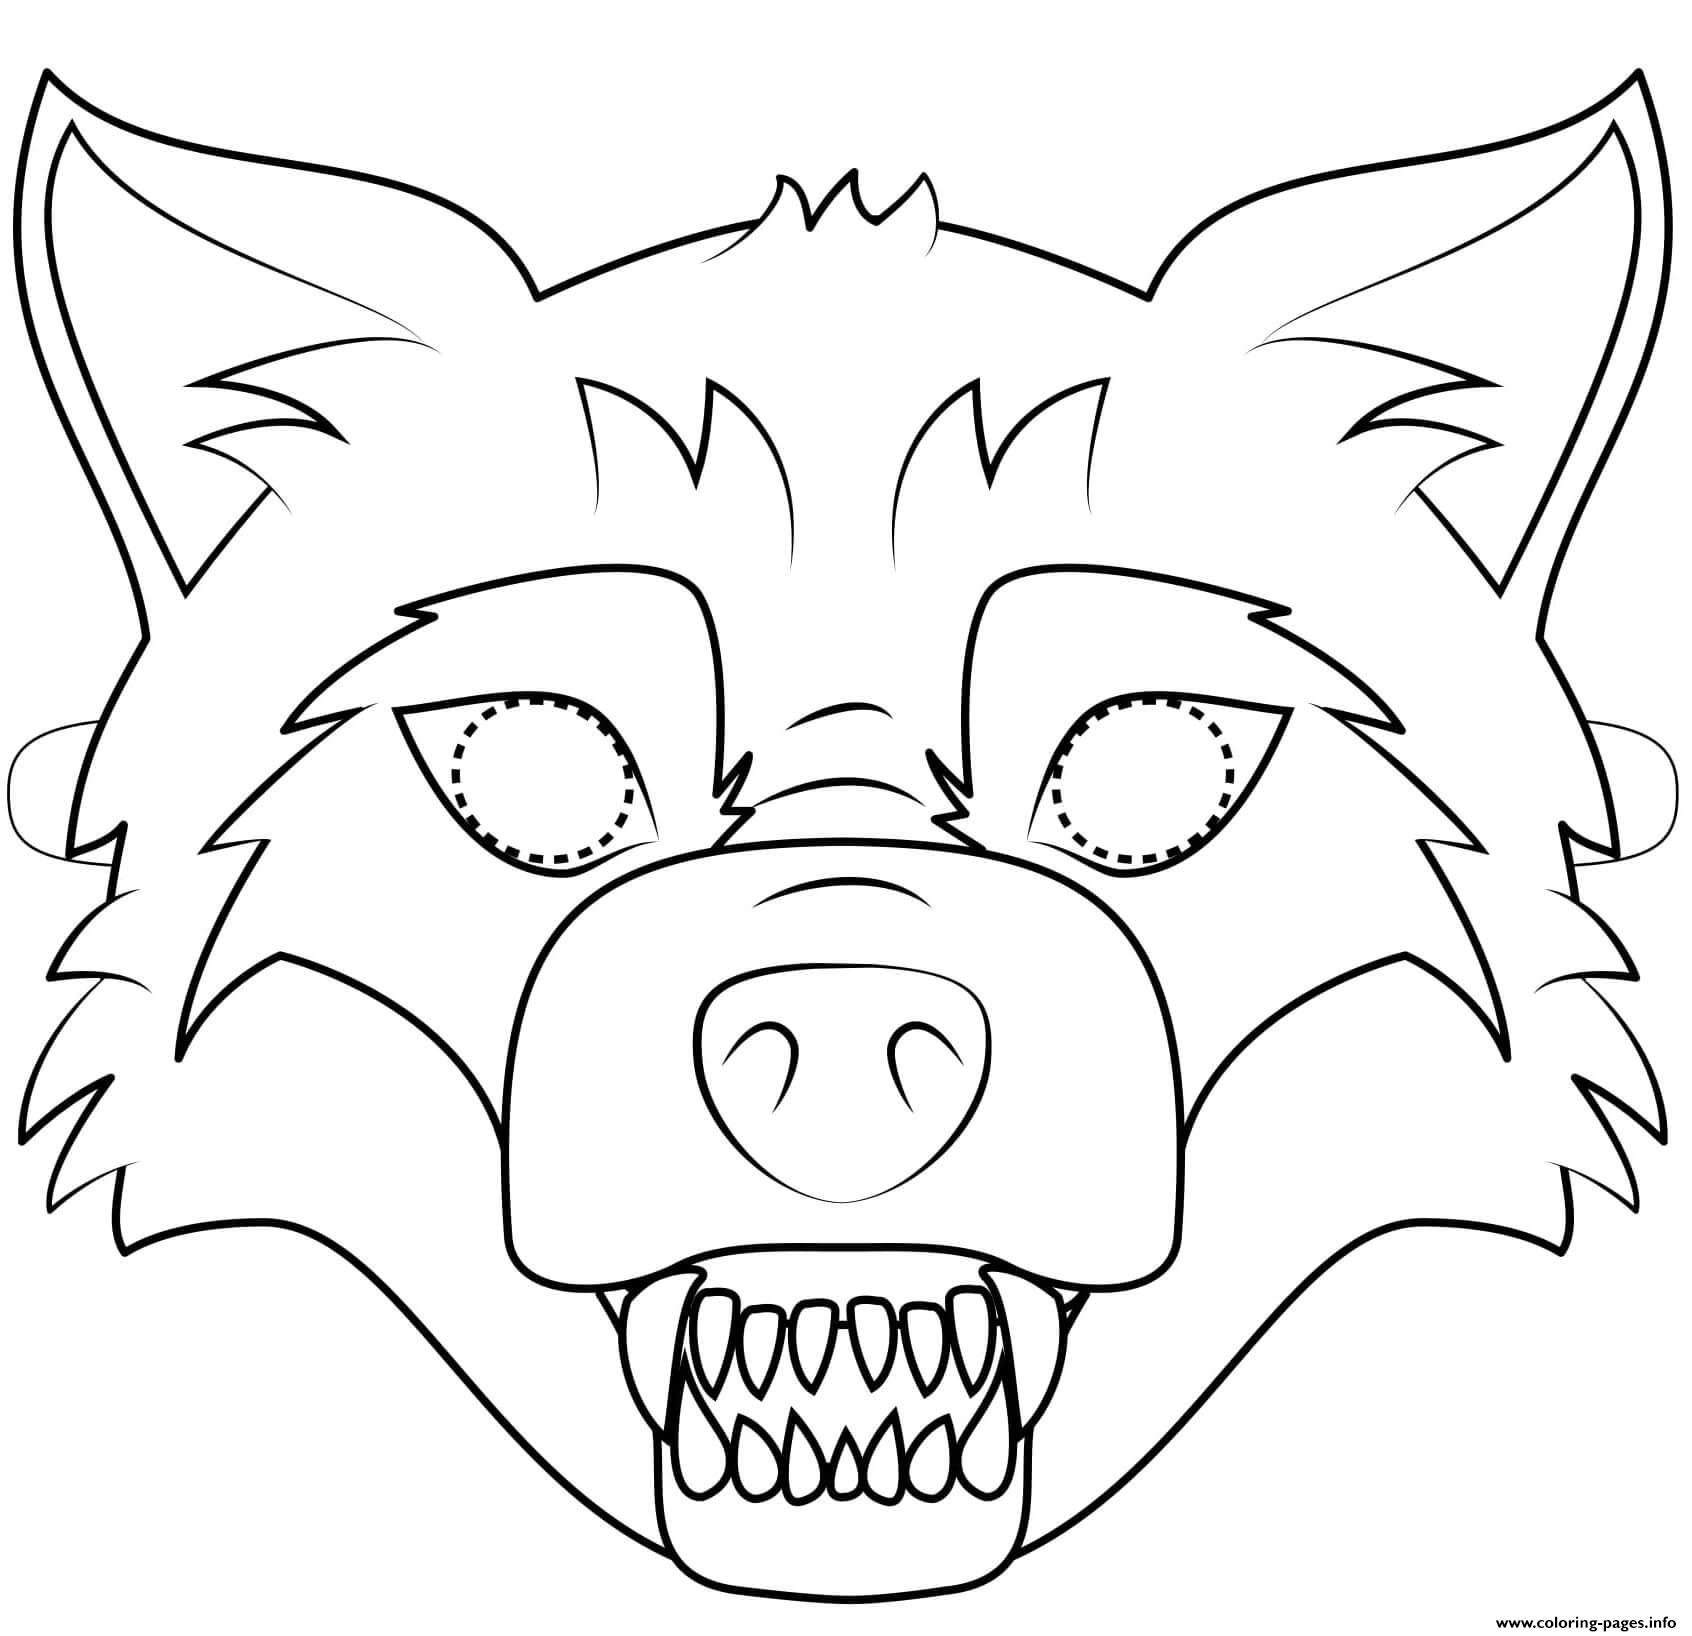 Coloring pages halloween masks ~ Adult Face Mask Print Out | Wiring Diagram Database